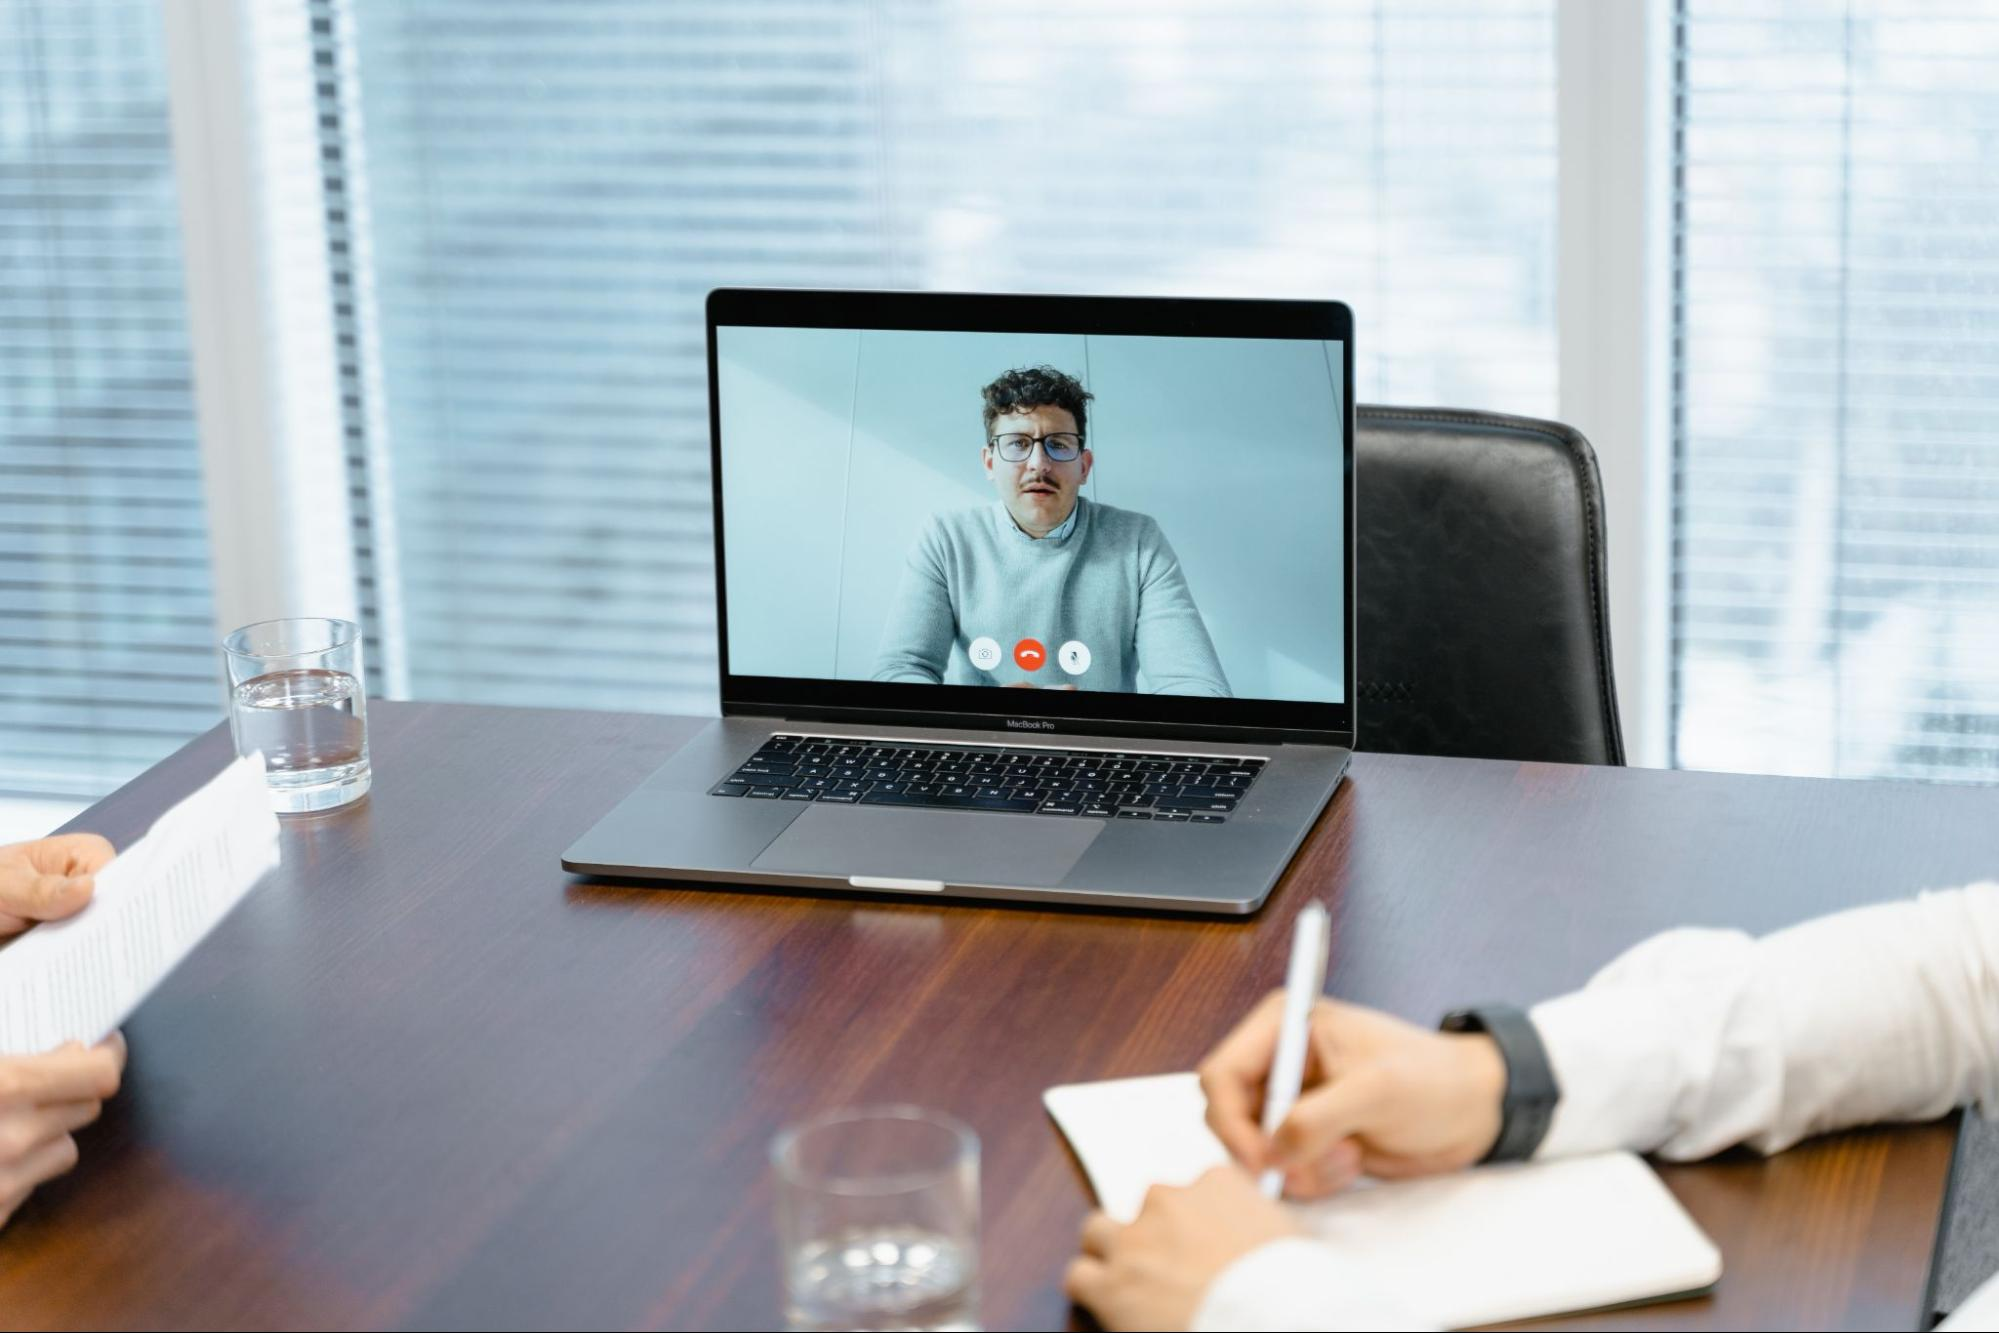 6 Reasons Why Your Business Needs Video Marketing